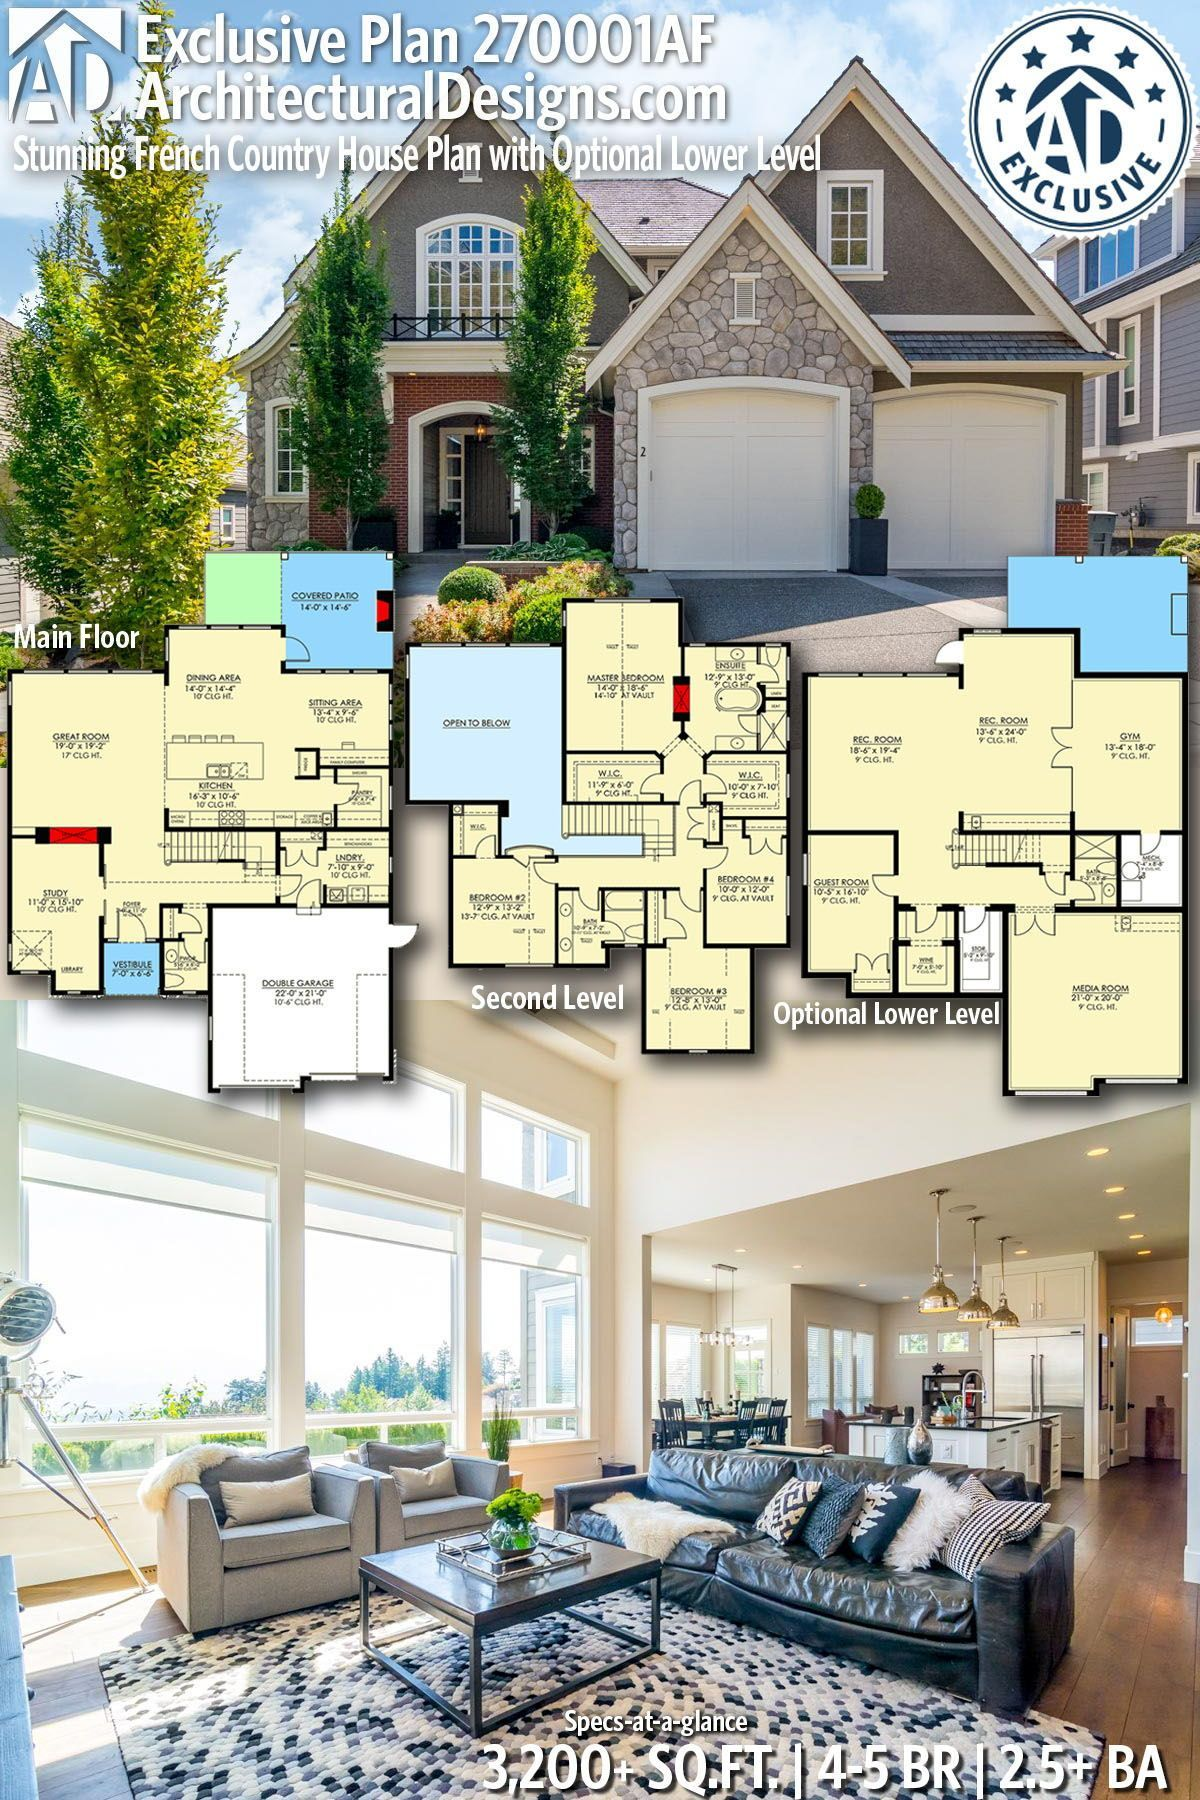 Plan 270001af Stunning French Country House Plan With Optional Lower Level French Country House Plans French Country House House Layouts